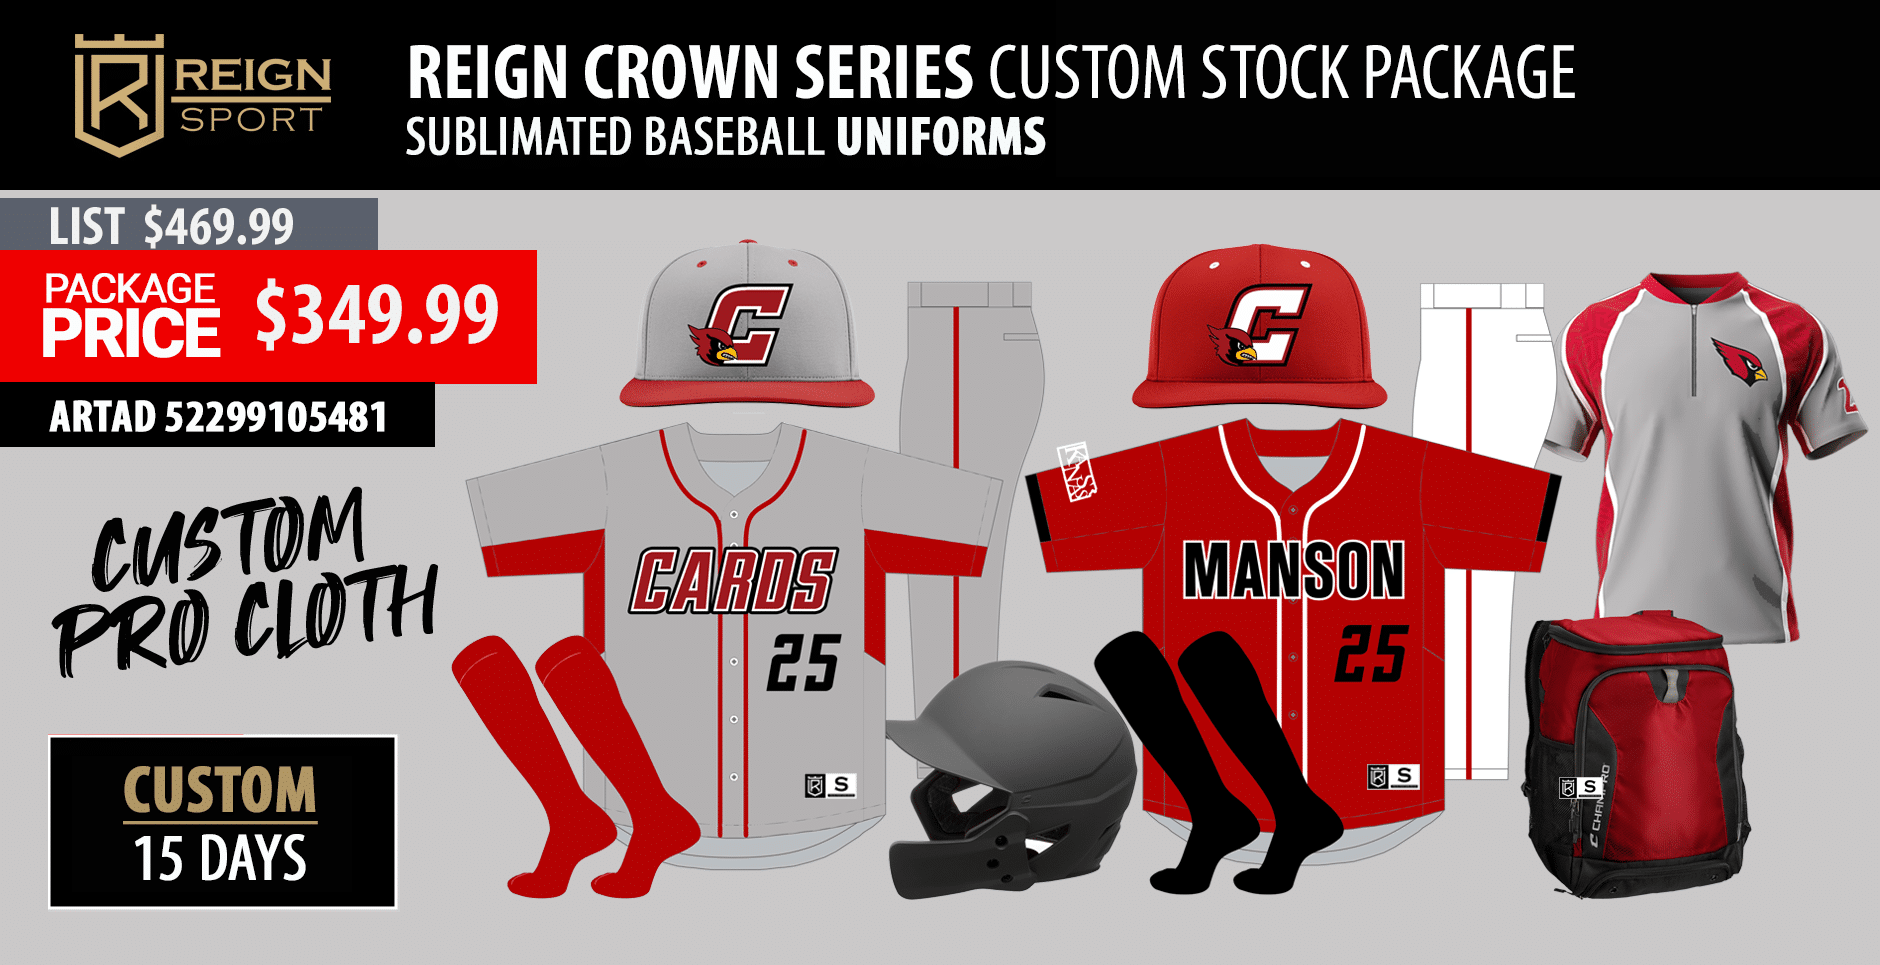 Adidas Legacy Baseball Sublimated NC State Uniform Package